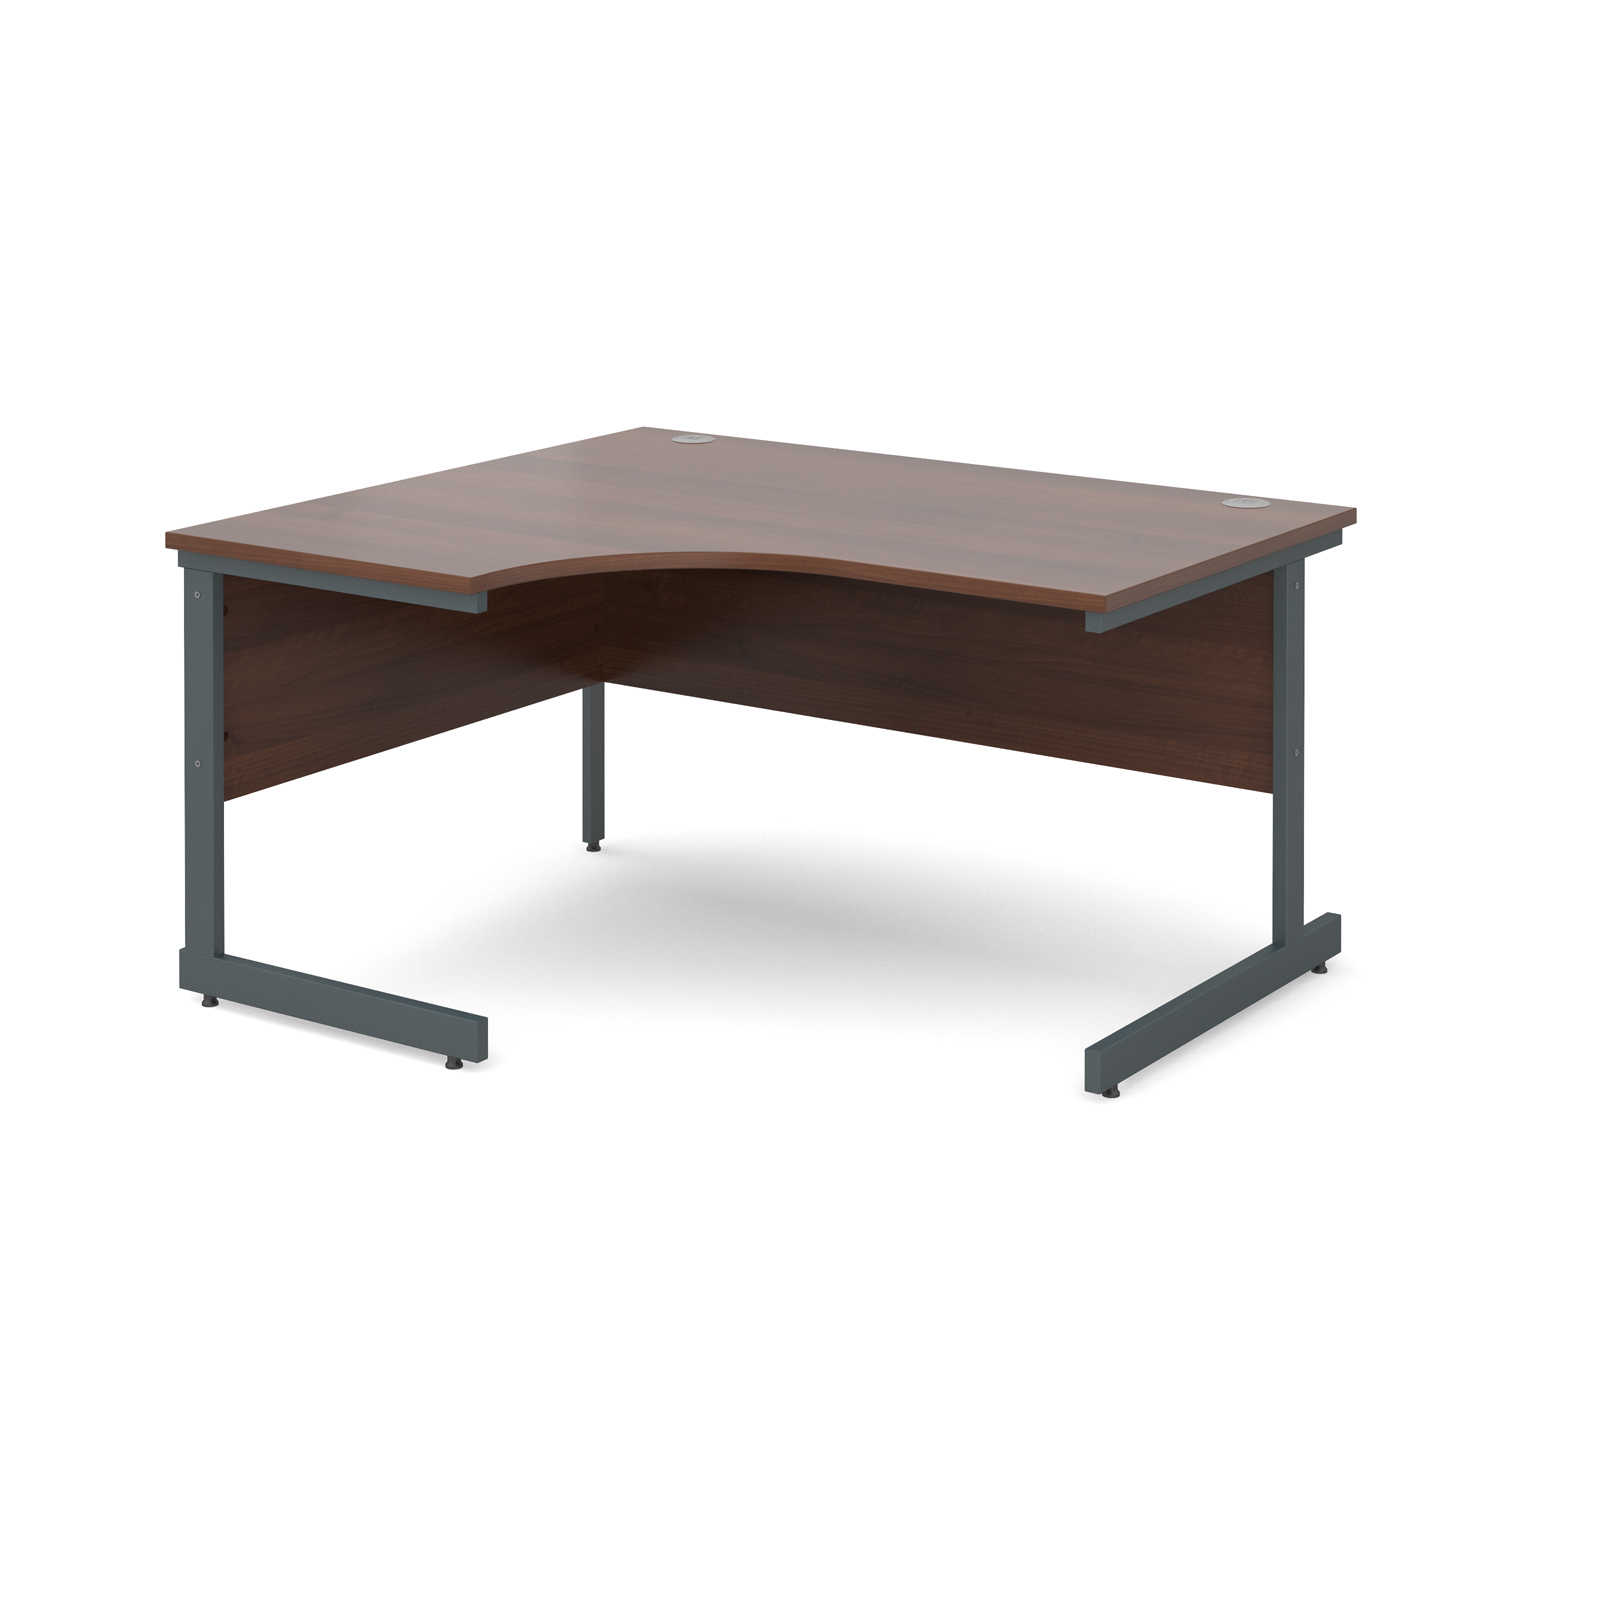 Contract 25 left hand ergonomic desk 1400mm - graphite cantilever frame, walnut top